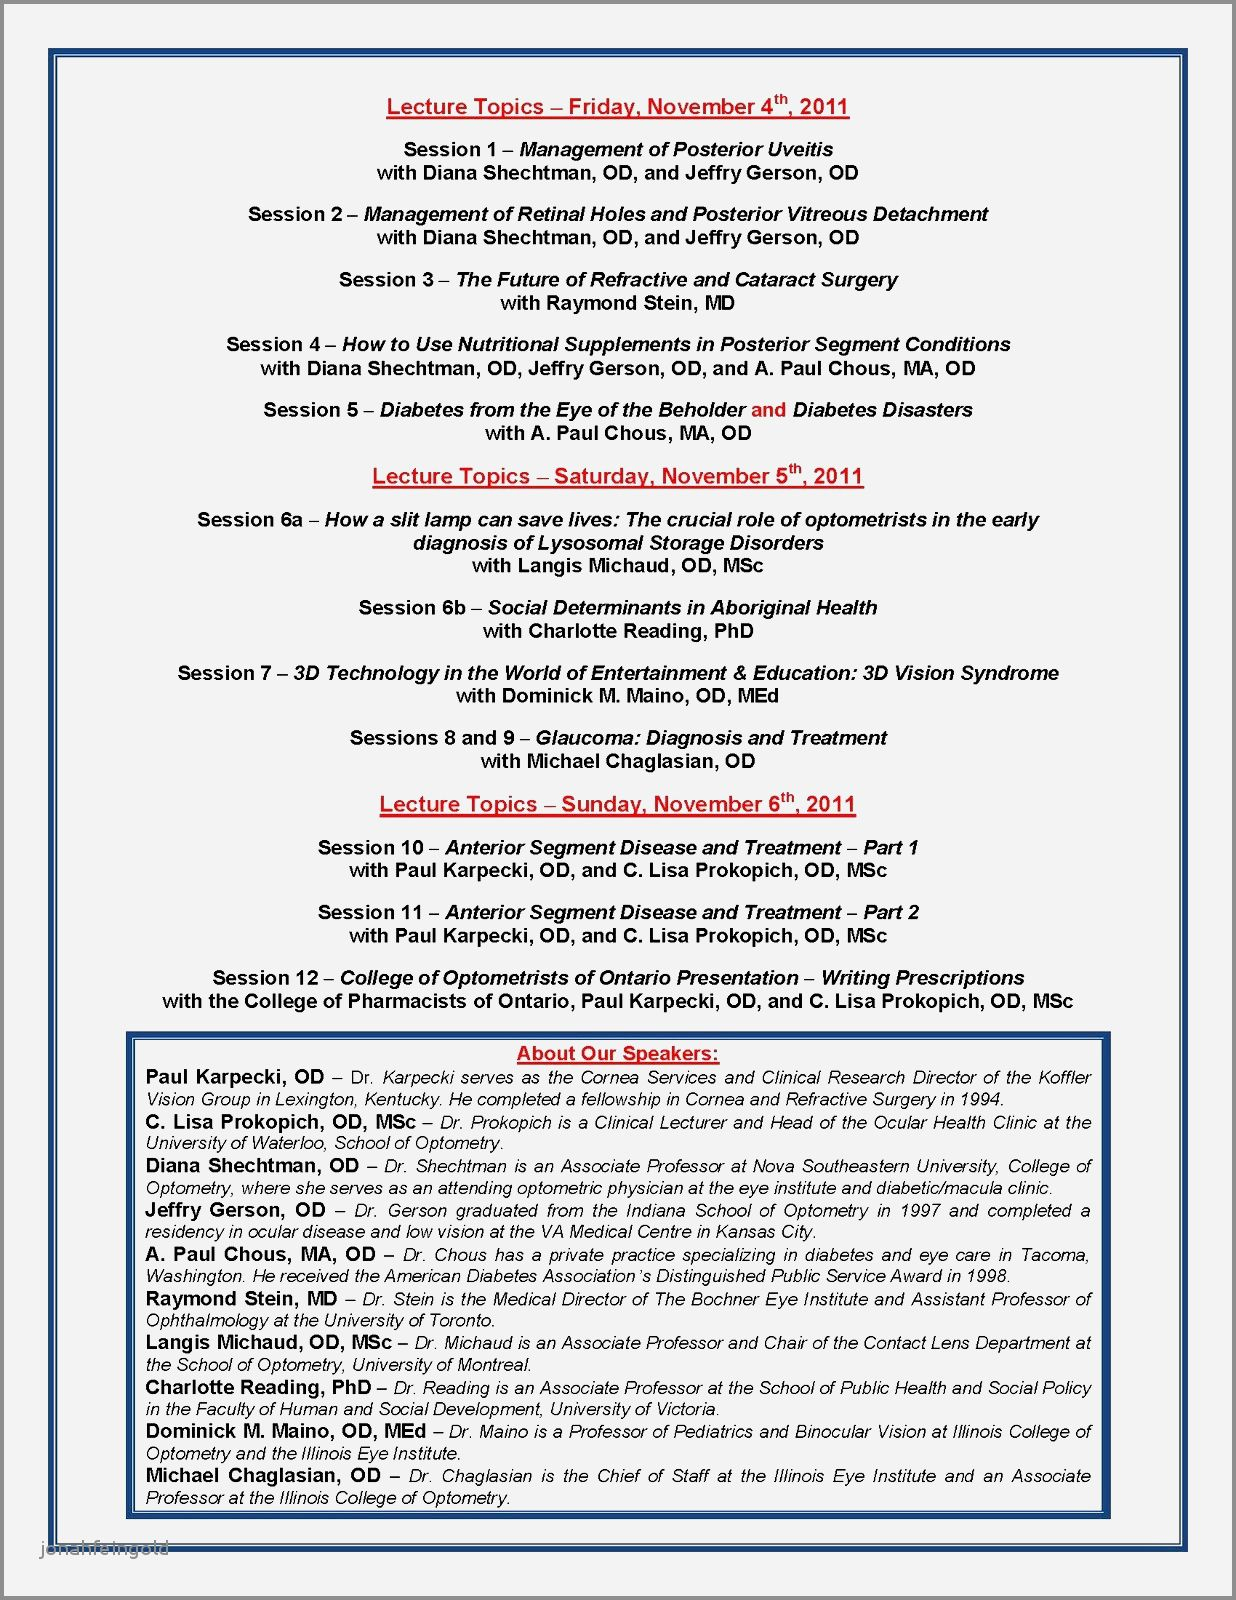 Resume Template for Graduate Students - Basic Resume Template for High School Graduate – Resume Examples for